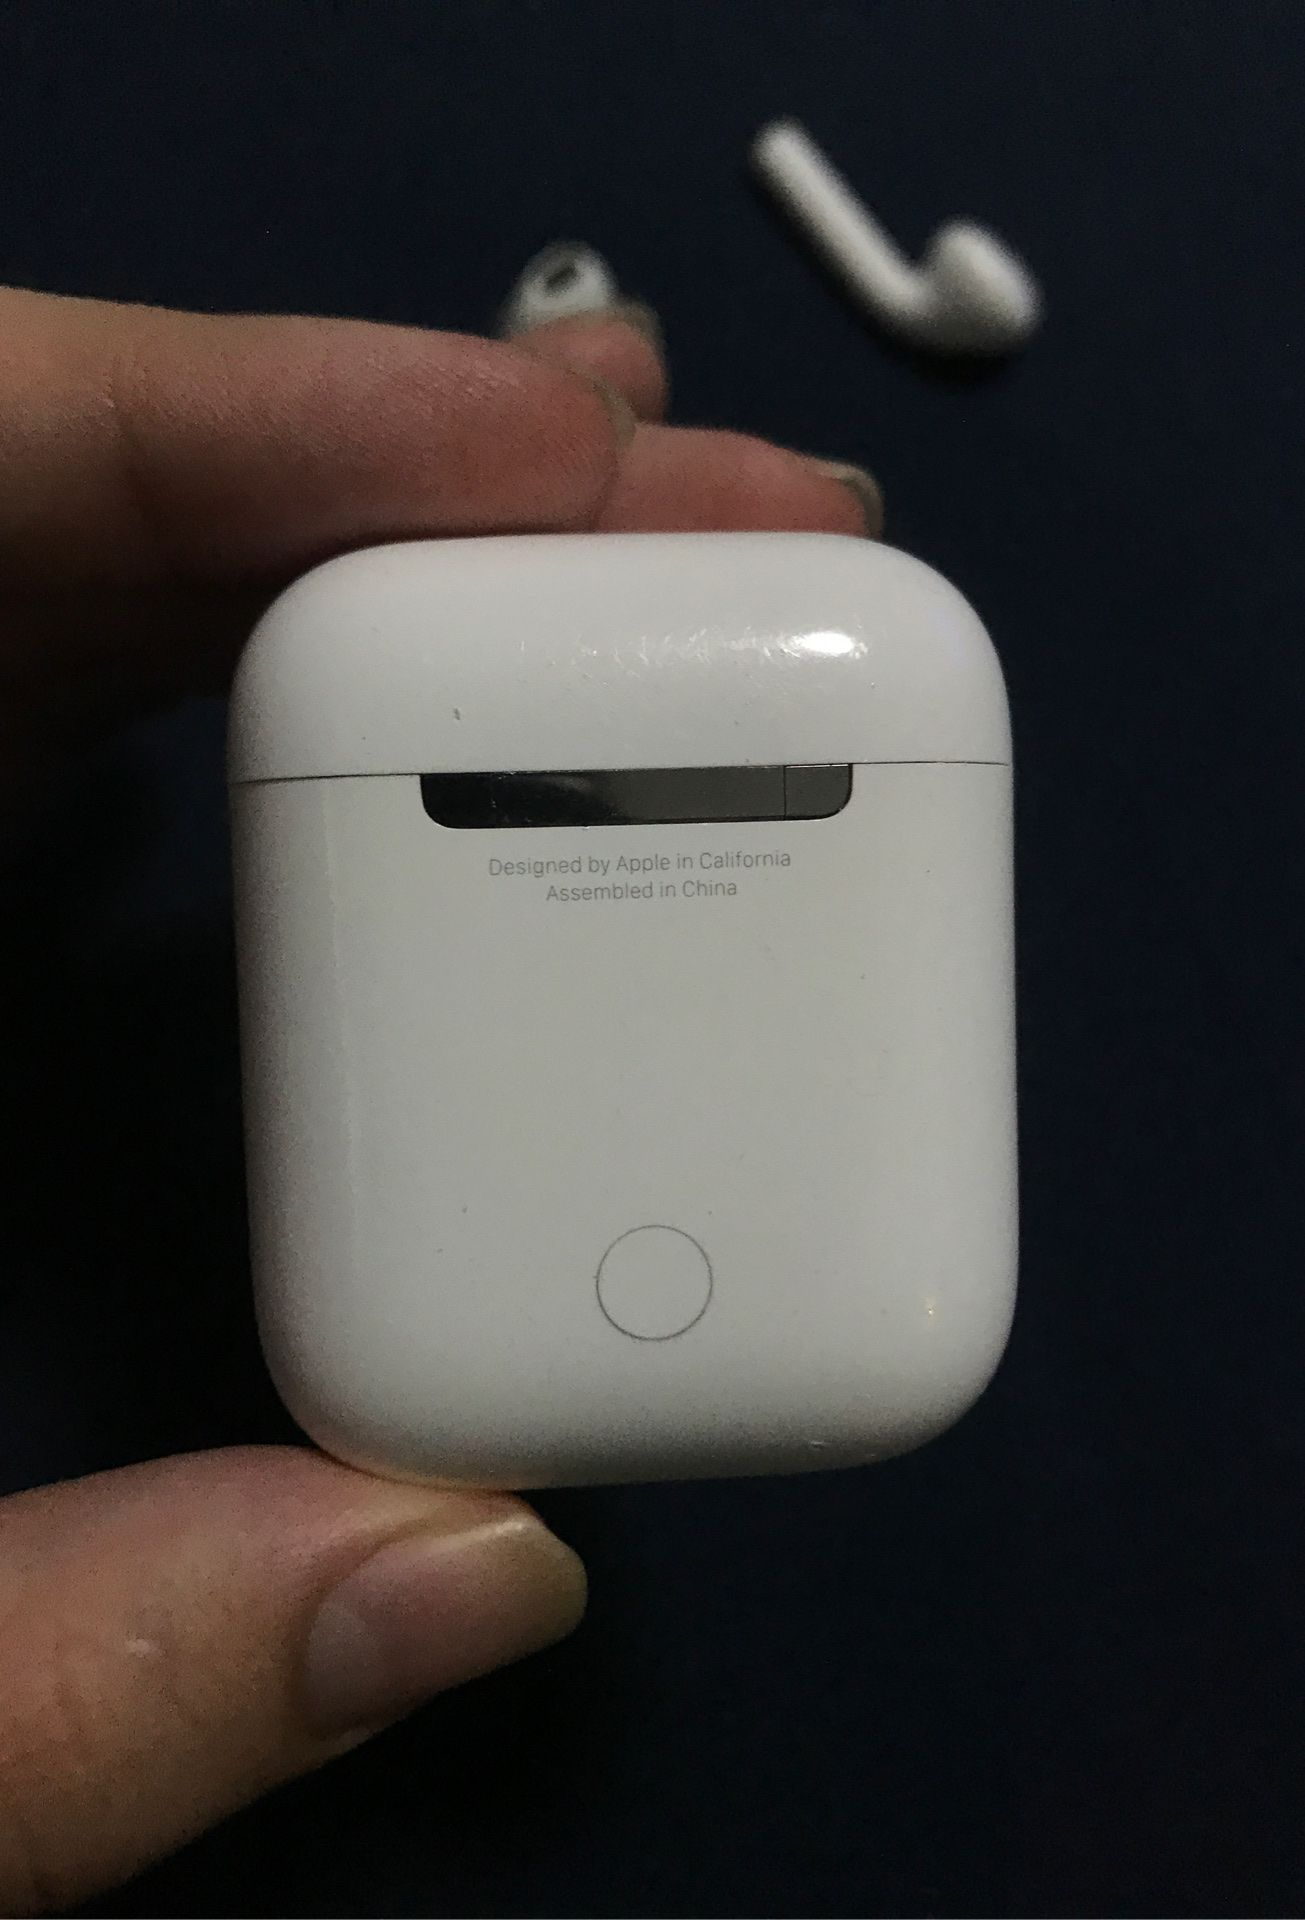 Authentic apple AirPods from California $50 form on price